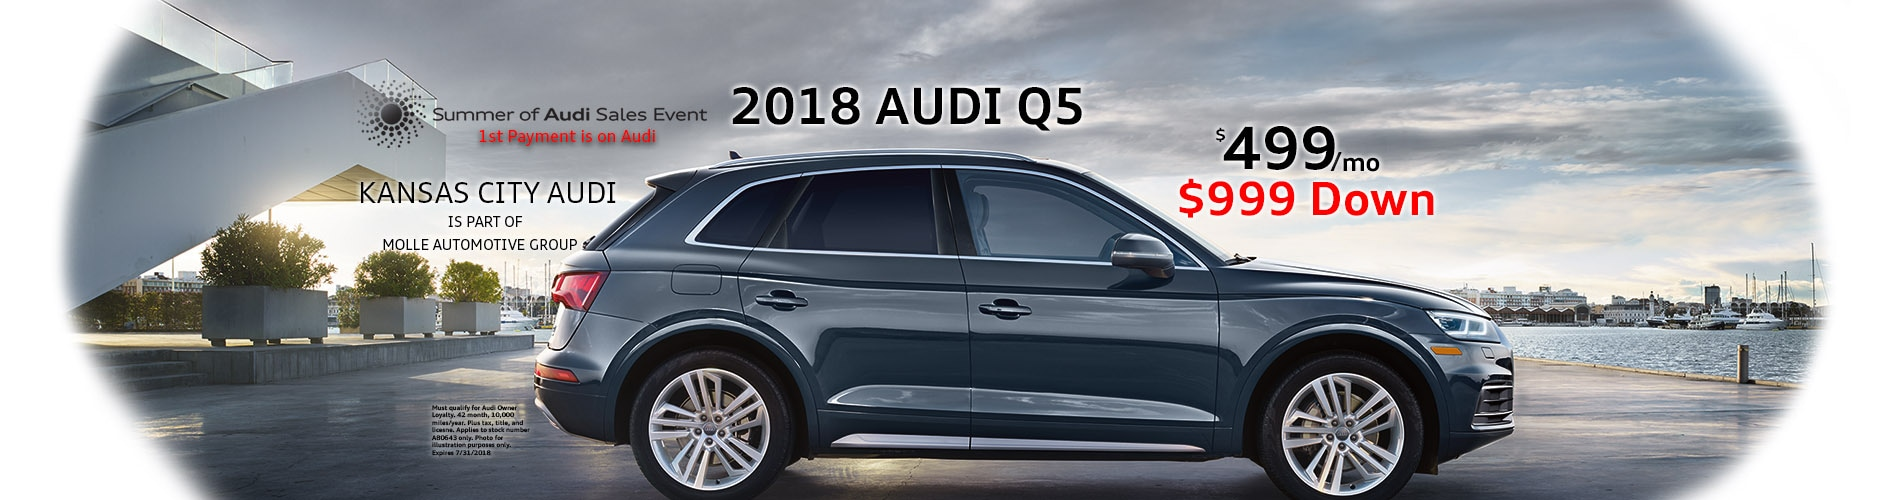 Kansas City Audi | New Audi dealership in Kansas City, MO 64114